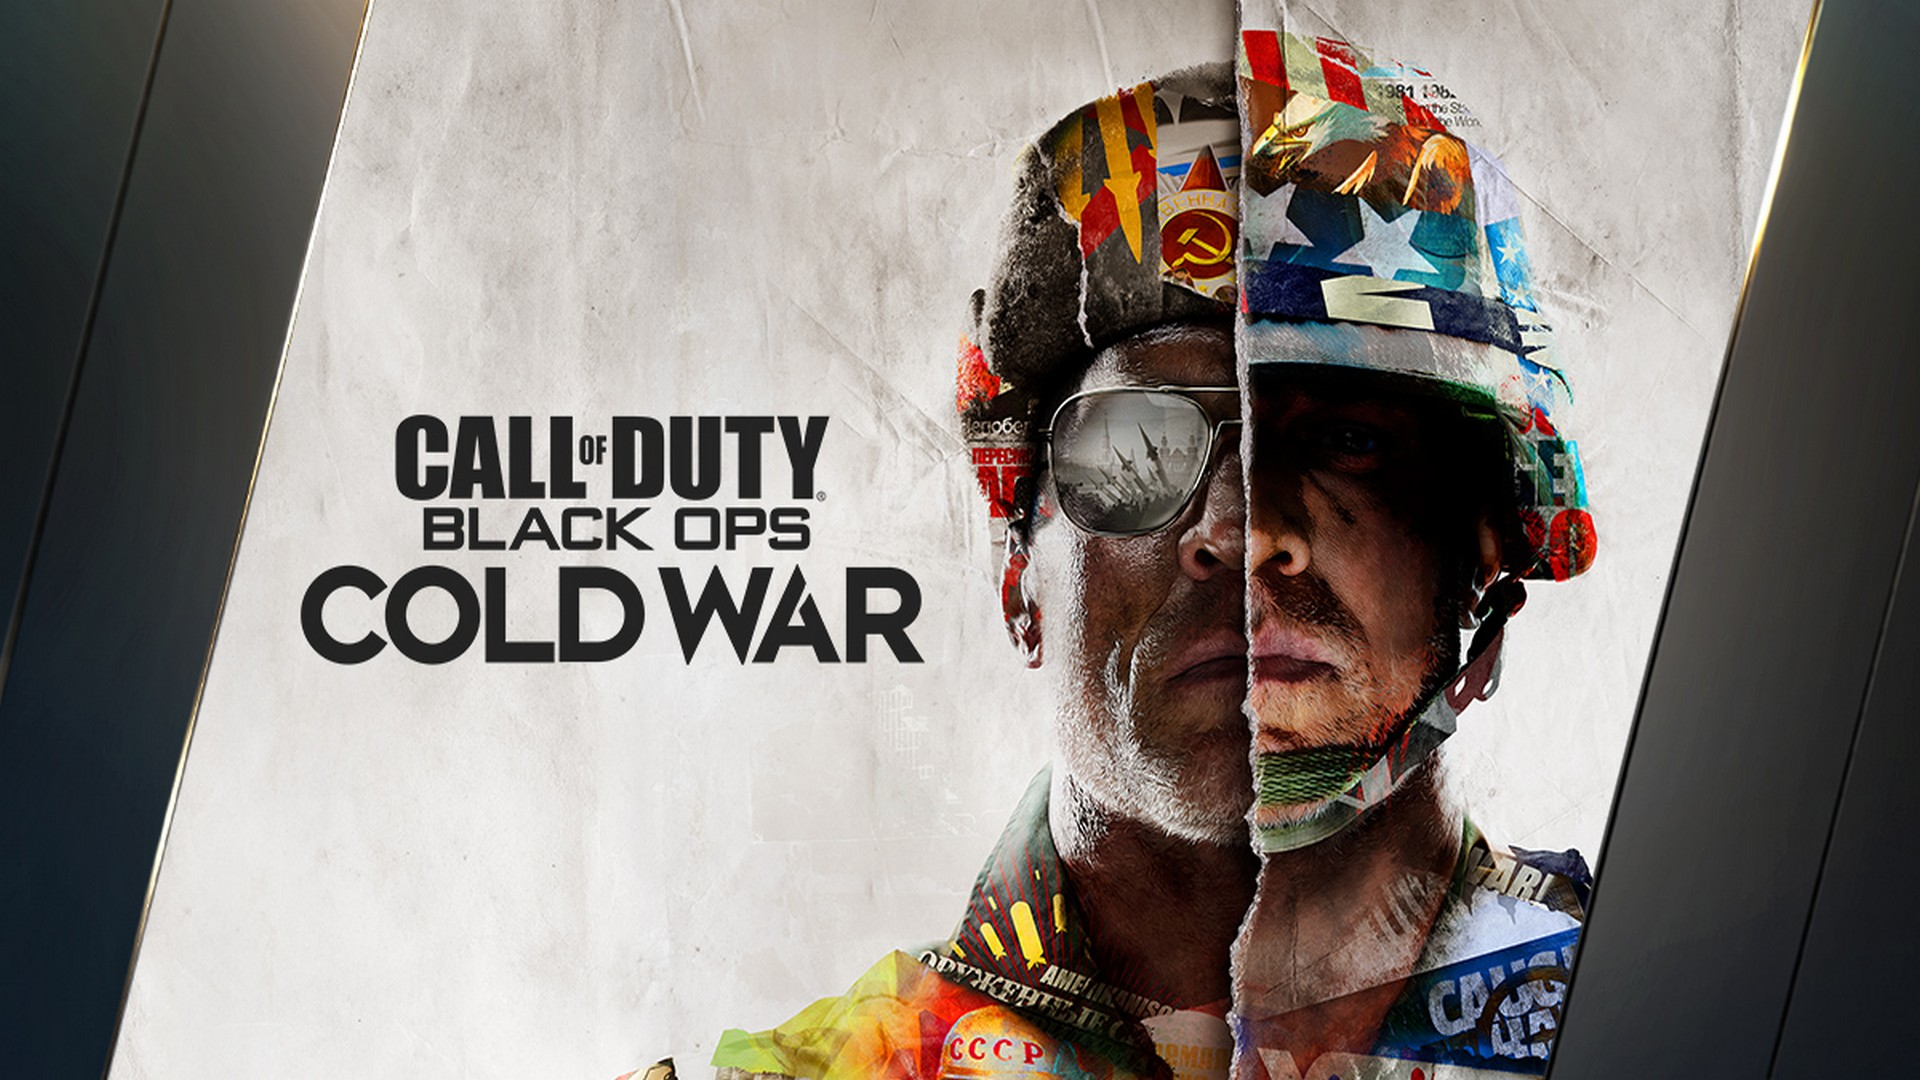 Call of Duty: Black Ops Cold War – Pre-Loading, File Size, and Confrontation Weapon Pack Details